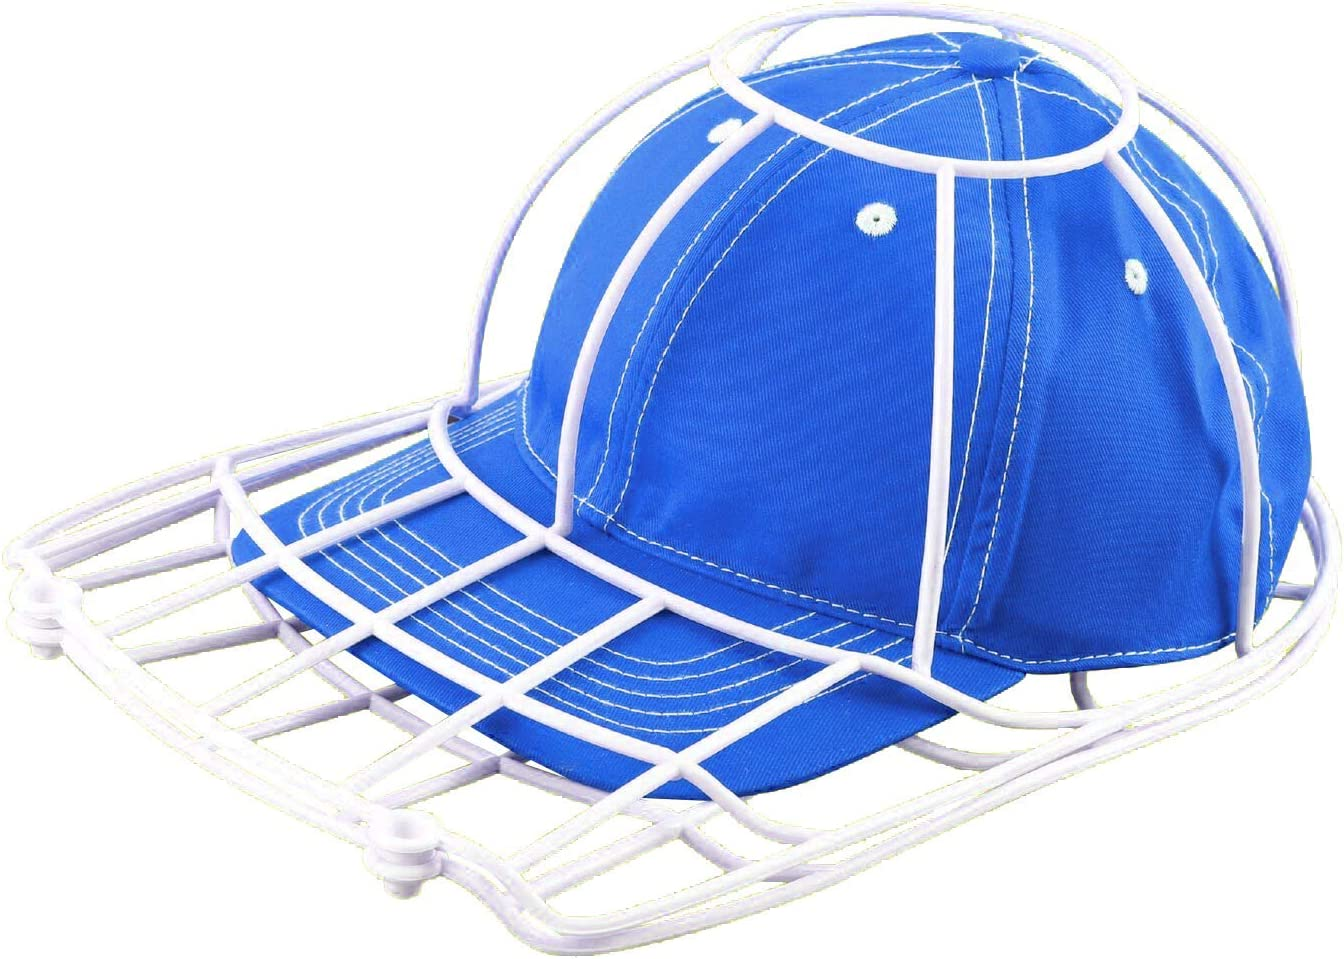 Large-scale sale TSF TOYS Ballcap Cap Washer Shaper Cleaner Prote Hat Max 72% OFF Baseball